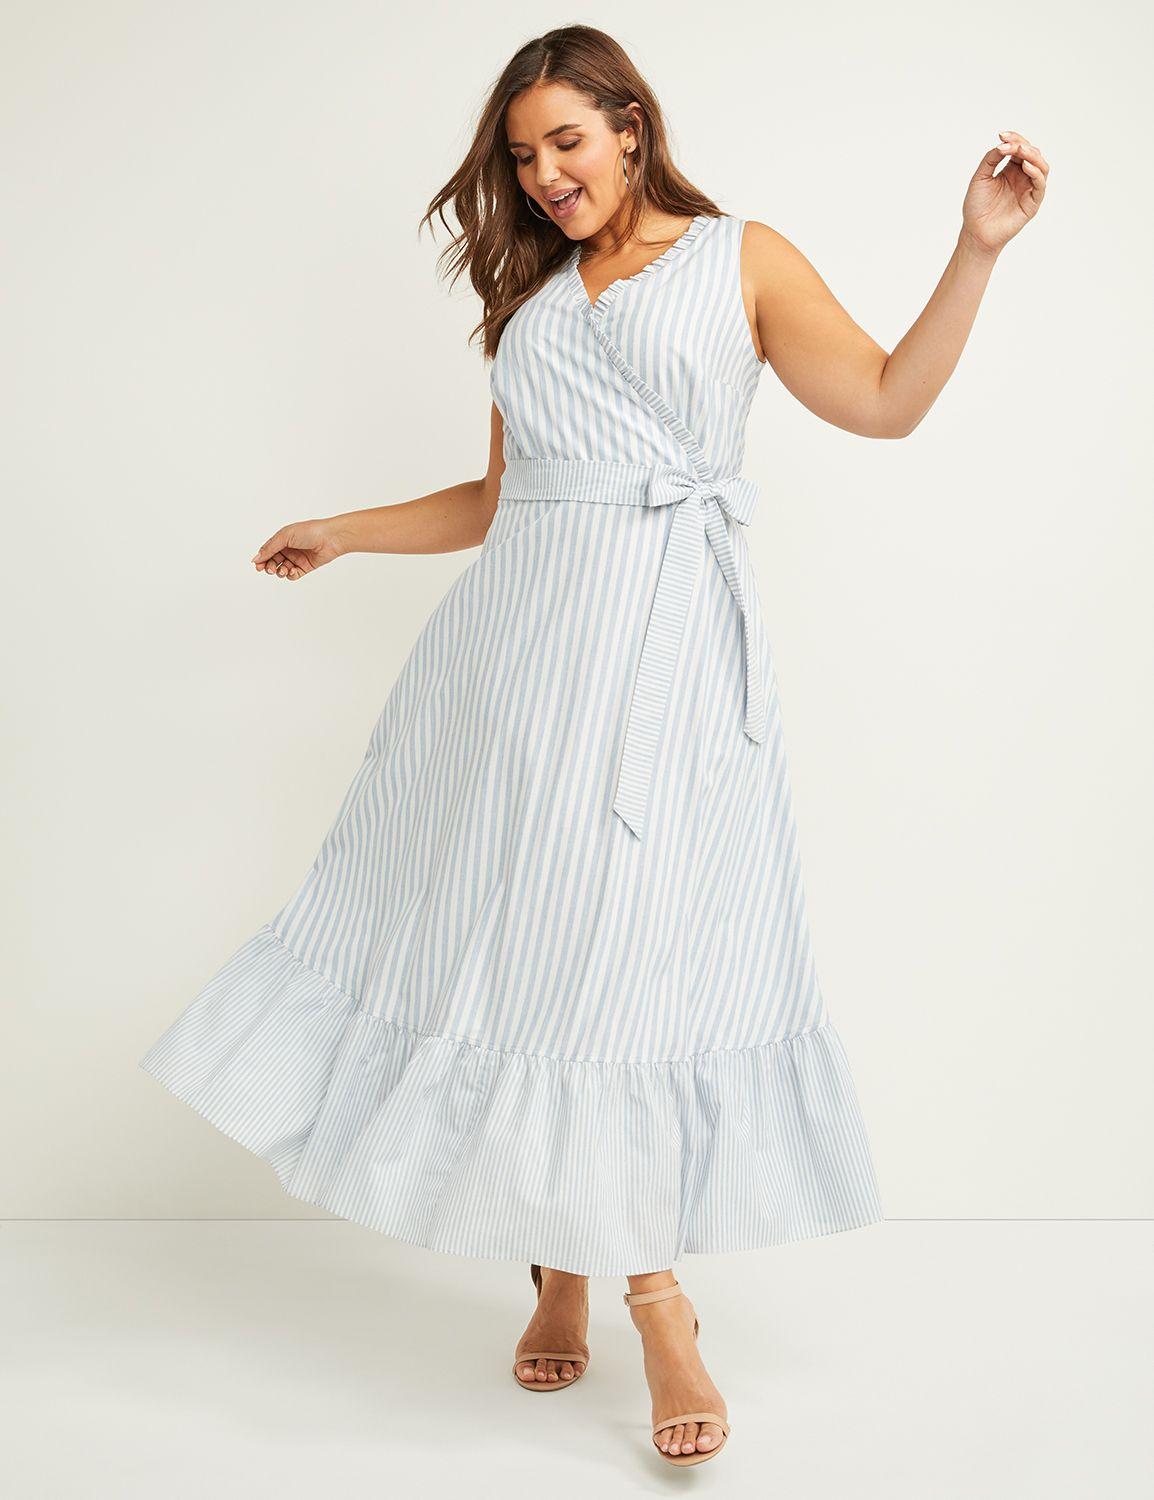 10 Wrap Dresses That Complement Plus-Size Body Types - FabFitFun